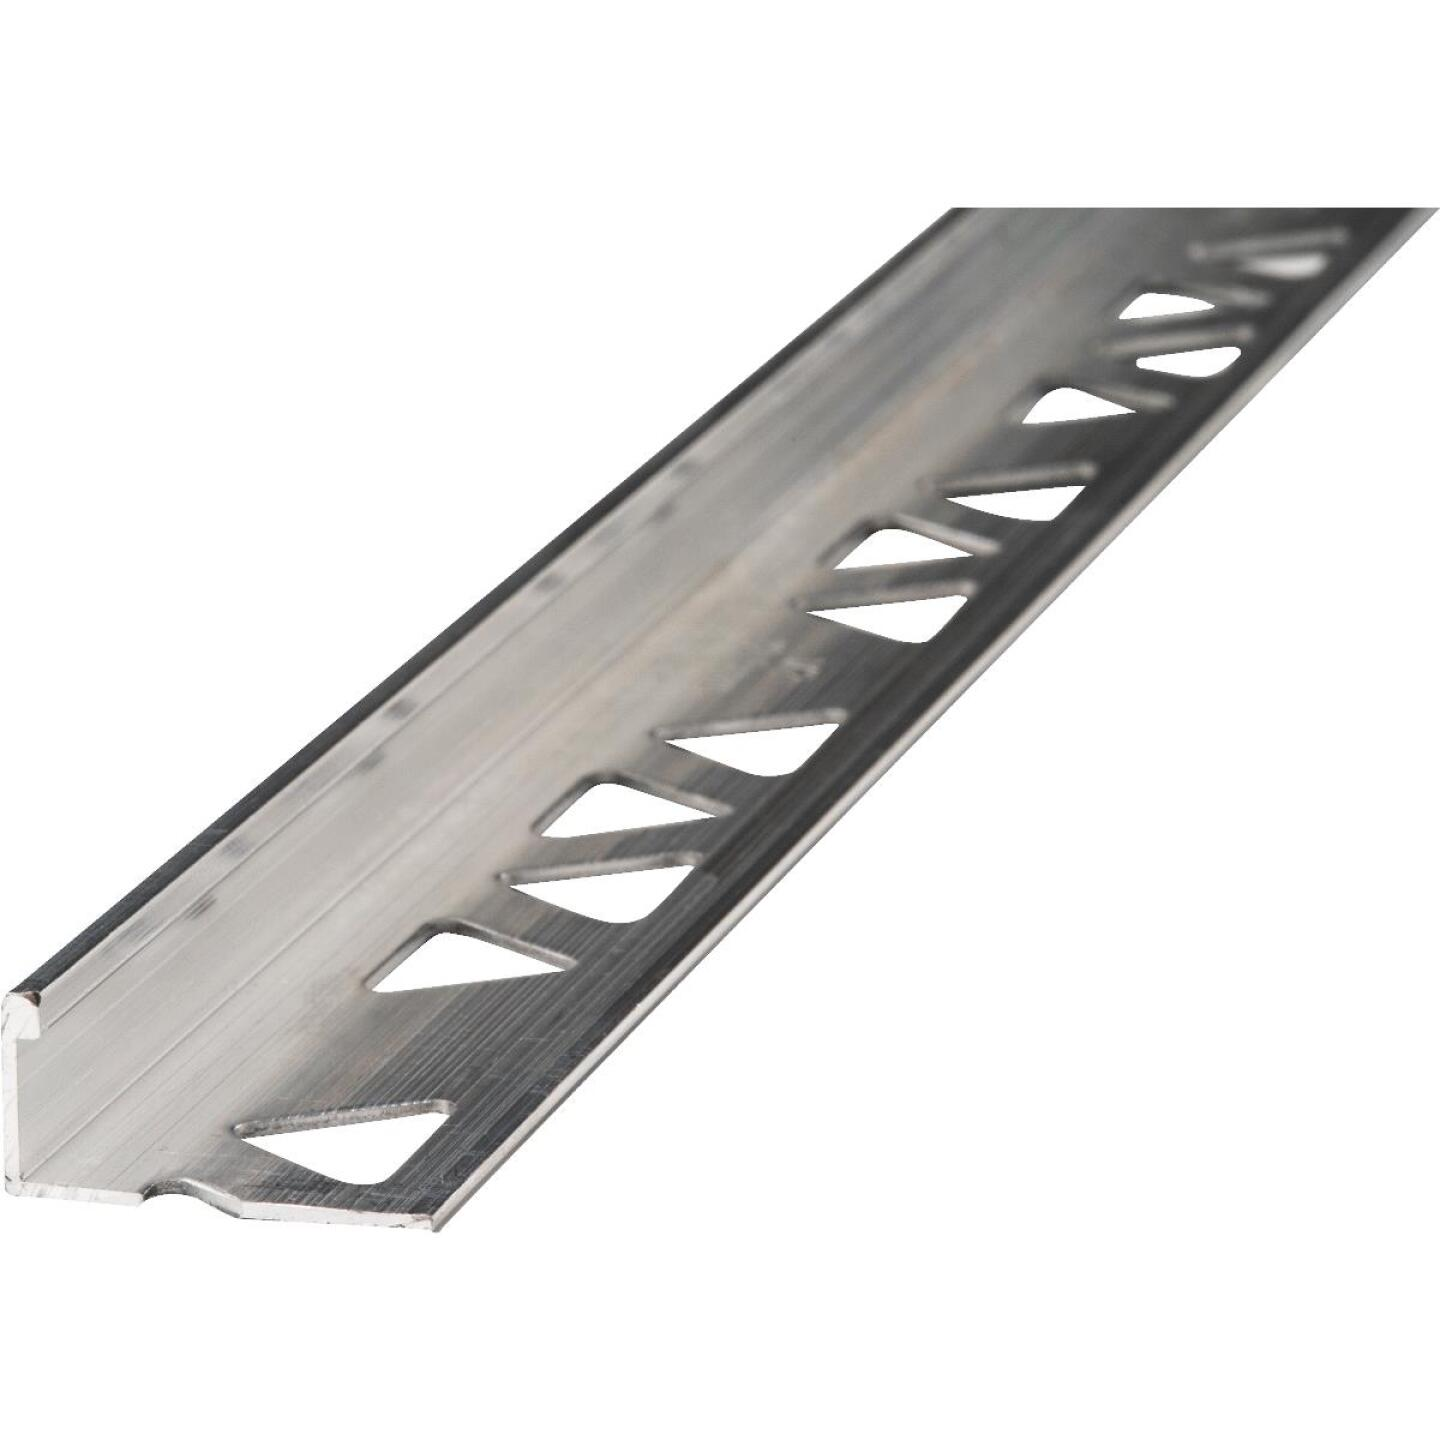 M D Building Products 1/2 In. x 8 Ft. Mill Aluminum L-Shape Ceramic Tile Edging Image 1